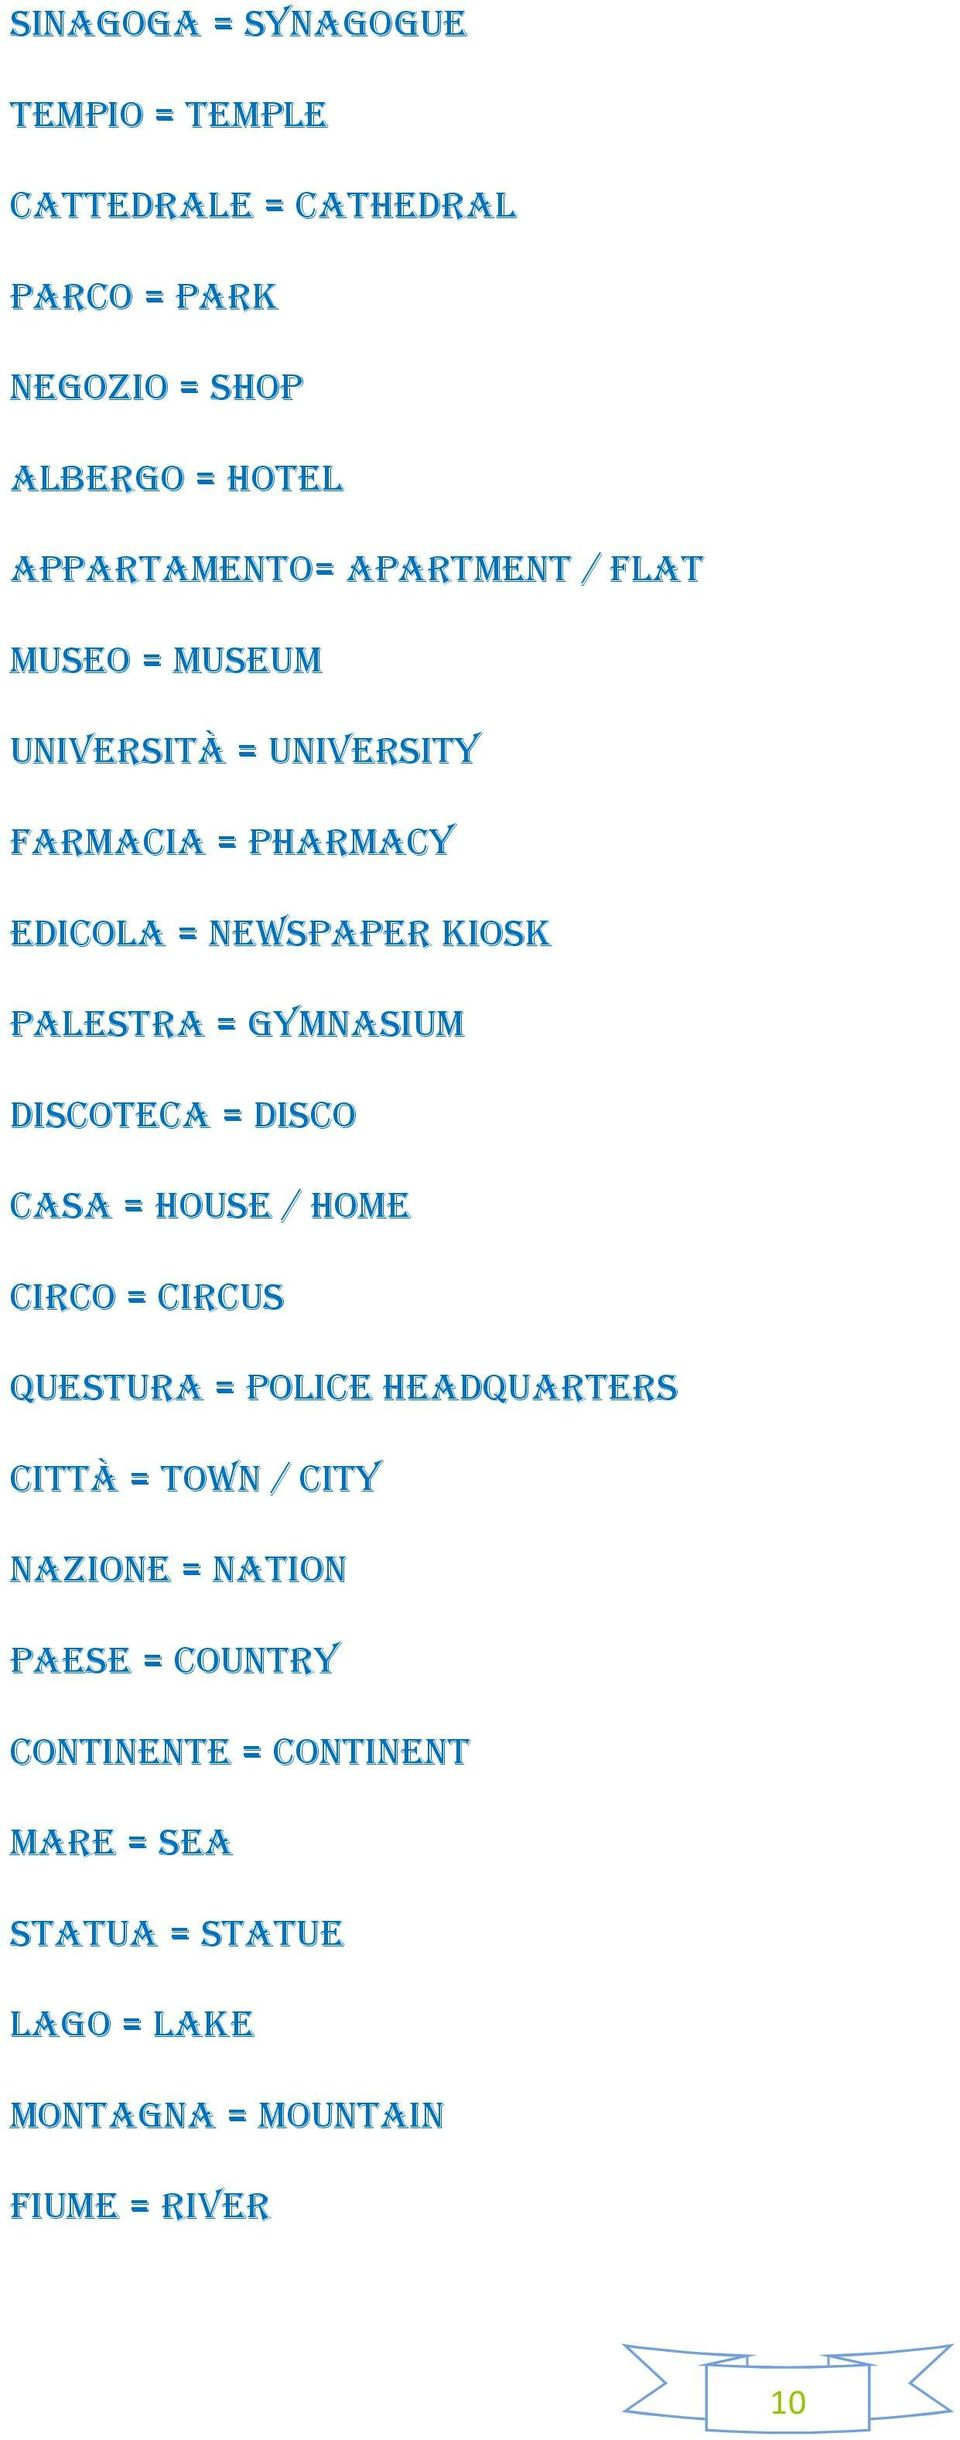 GYMNASIUM DISCOTECA = DISCO CASA = HOUSE / HOME CIRCO = CIRCUS QUESTURA = POLICE HEADQUARTERS CITTÀ = TOWN / CITY